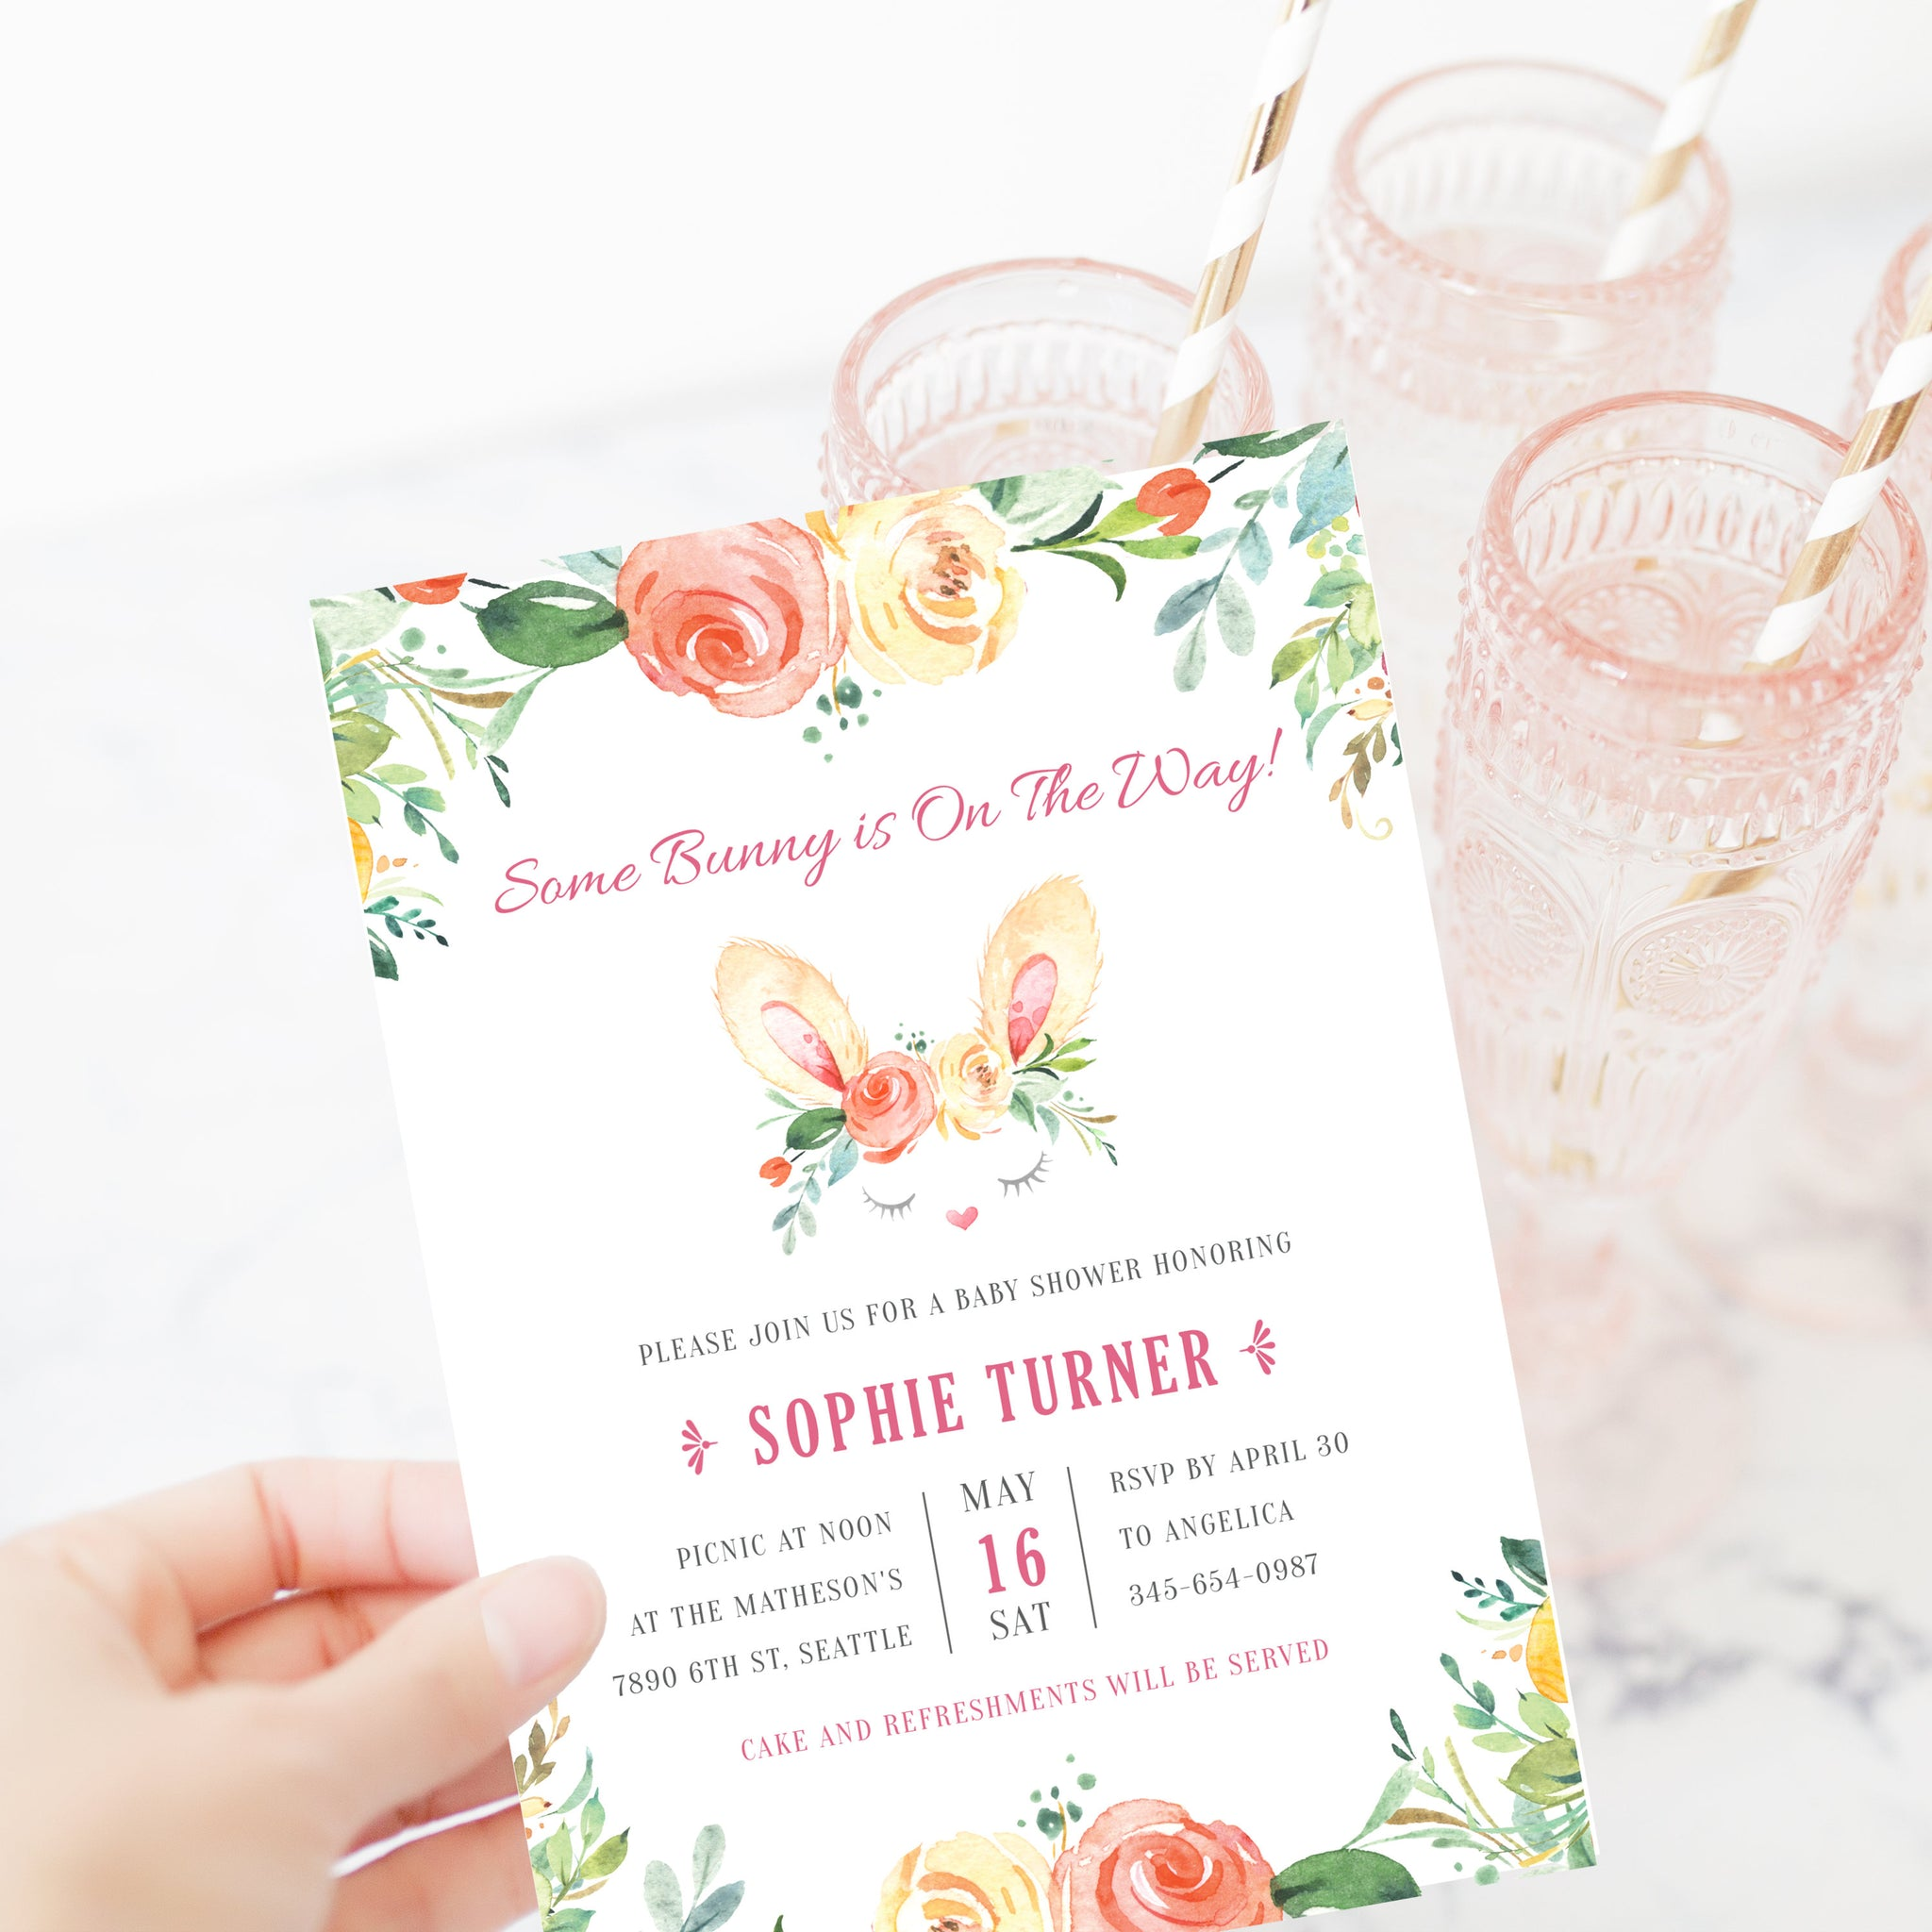 Bunny Baby Shower Invitation Template, Some Bunny Is On The Way Invitation, Easter Baby Shower Printable, DIGITAL DOWNLOAD - B100 - @PlumPolkaDot